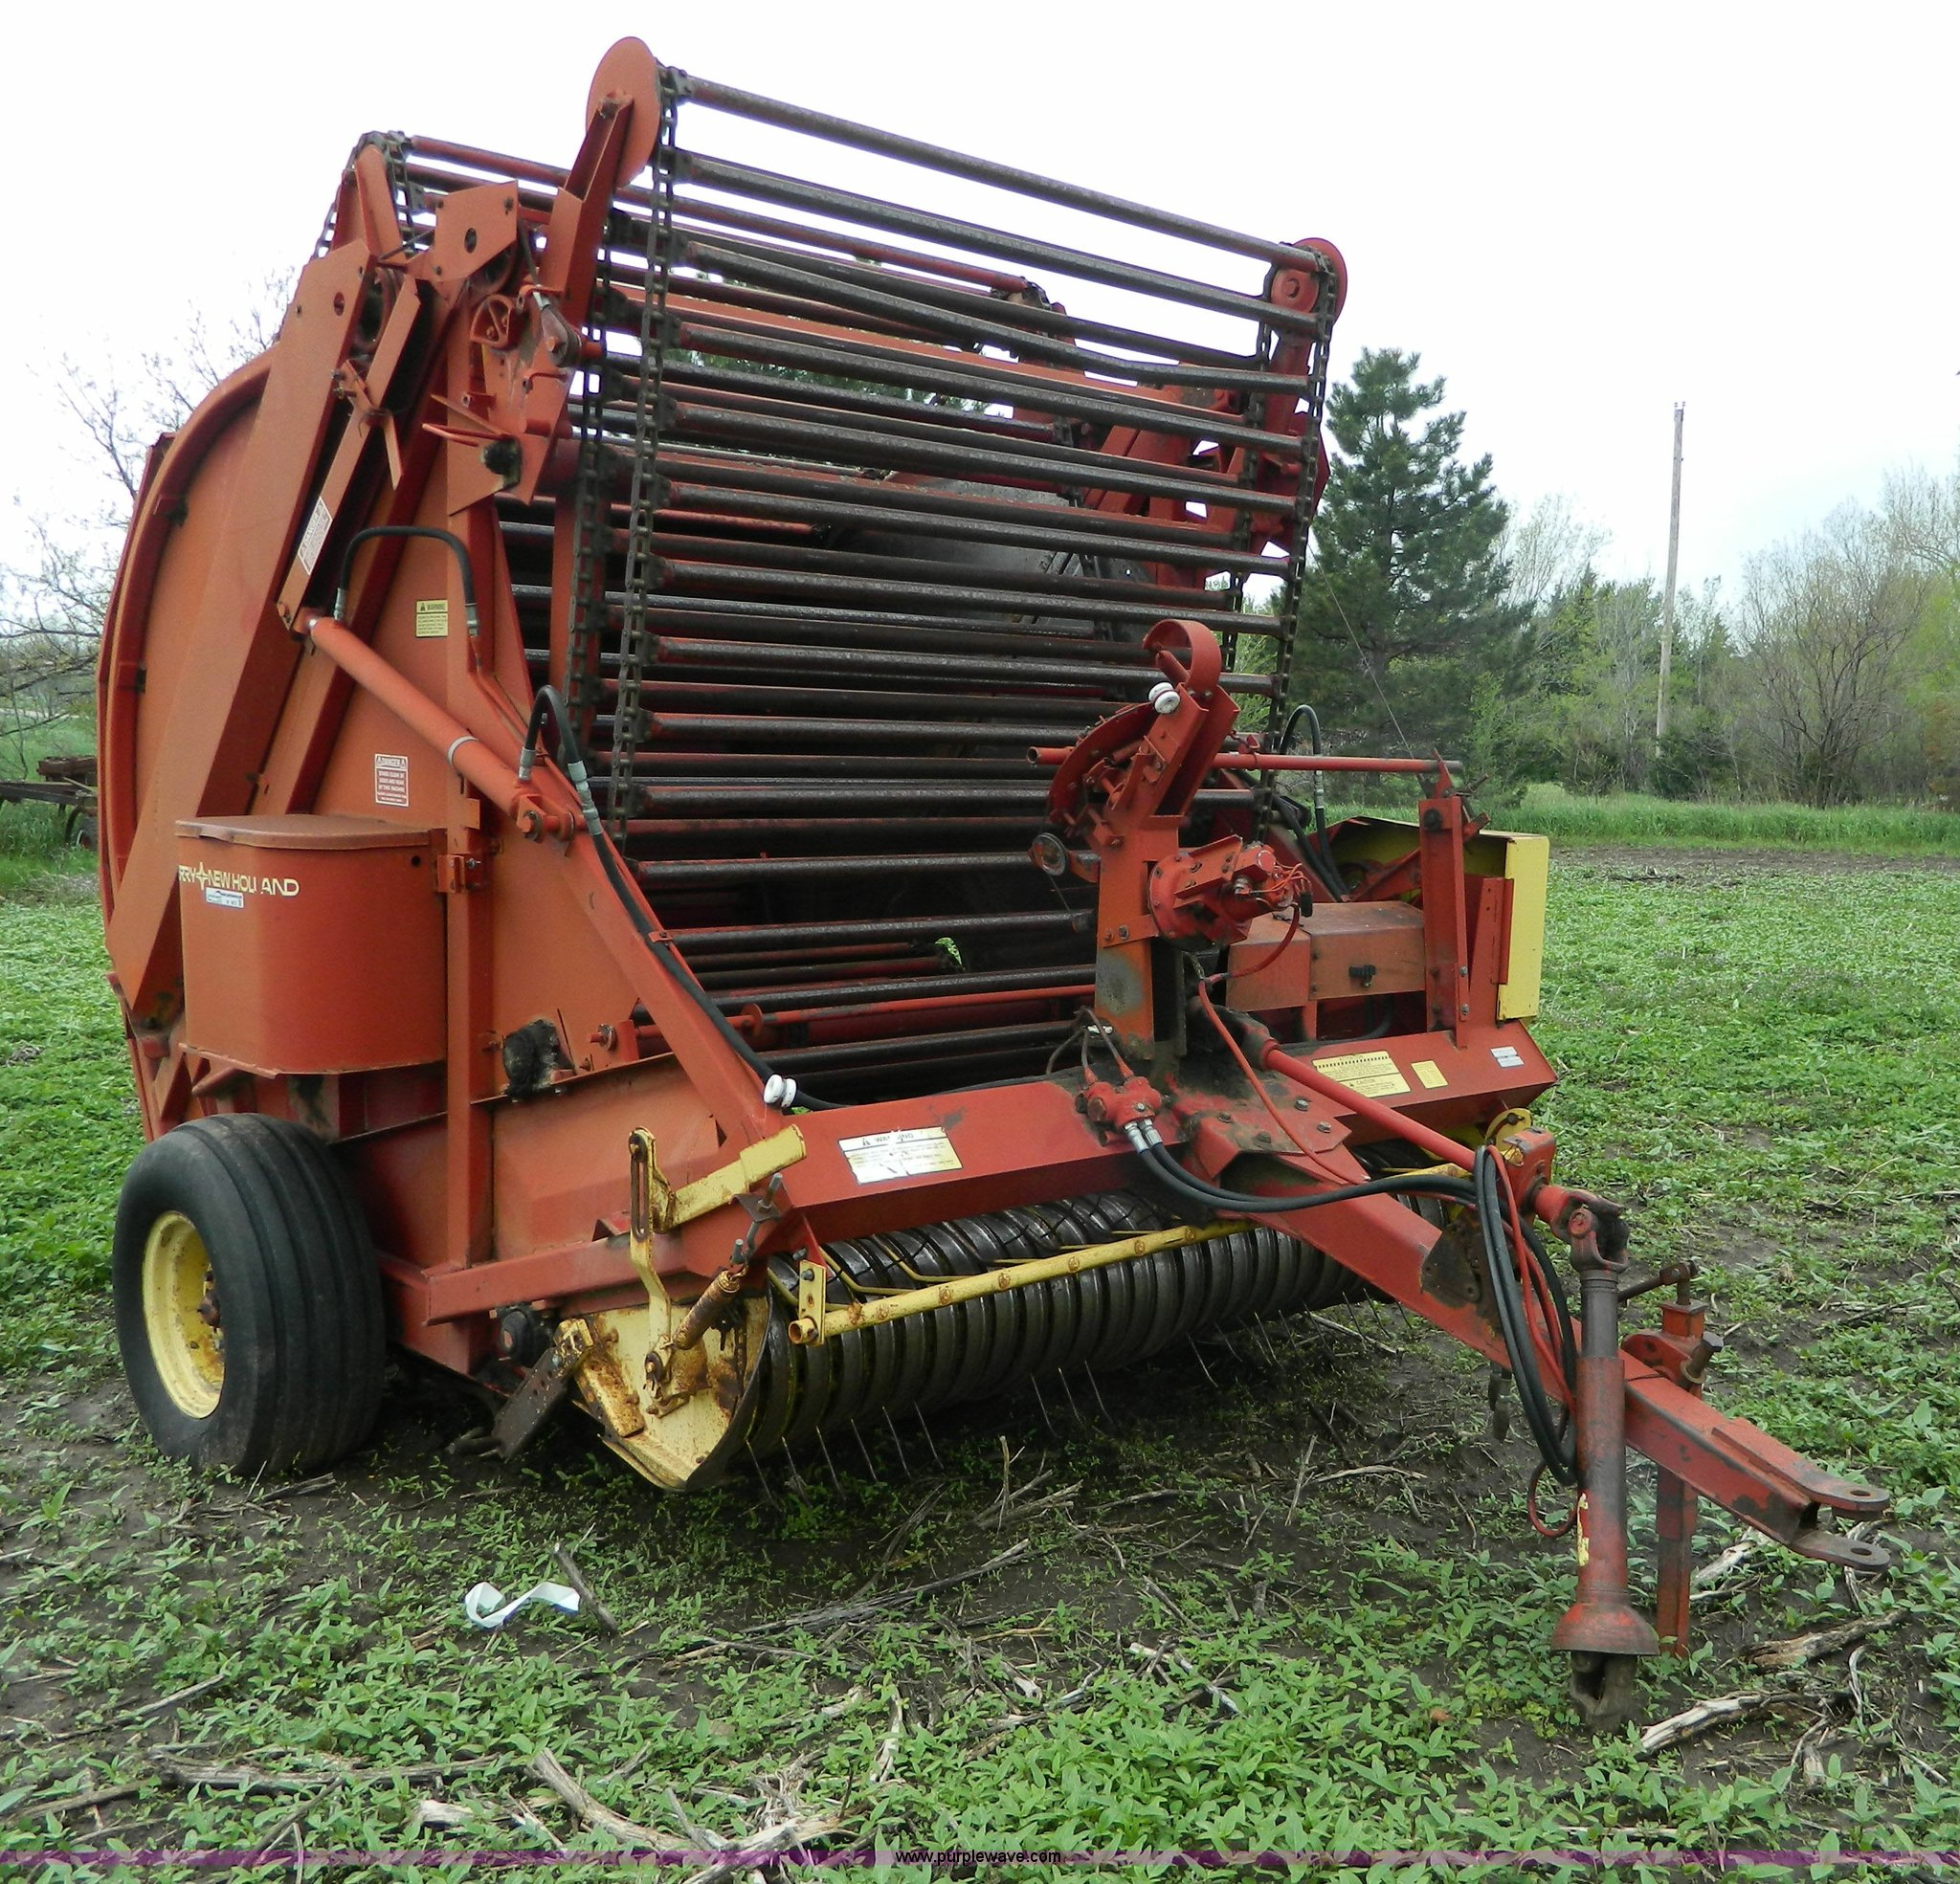 New Holland 850 round baler | Item W9012 | SOLD! May 29 Ag E